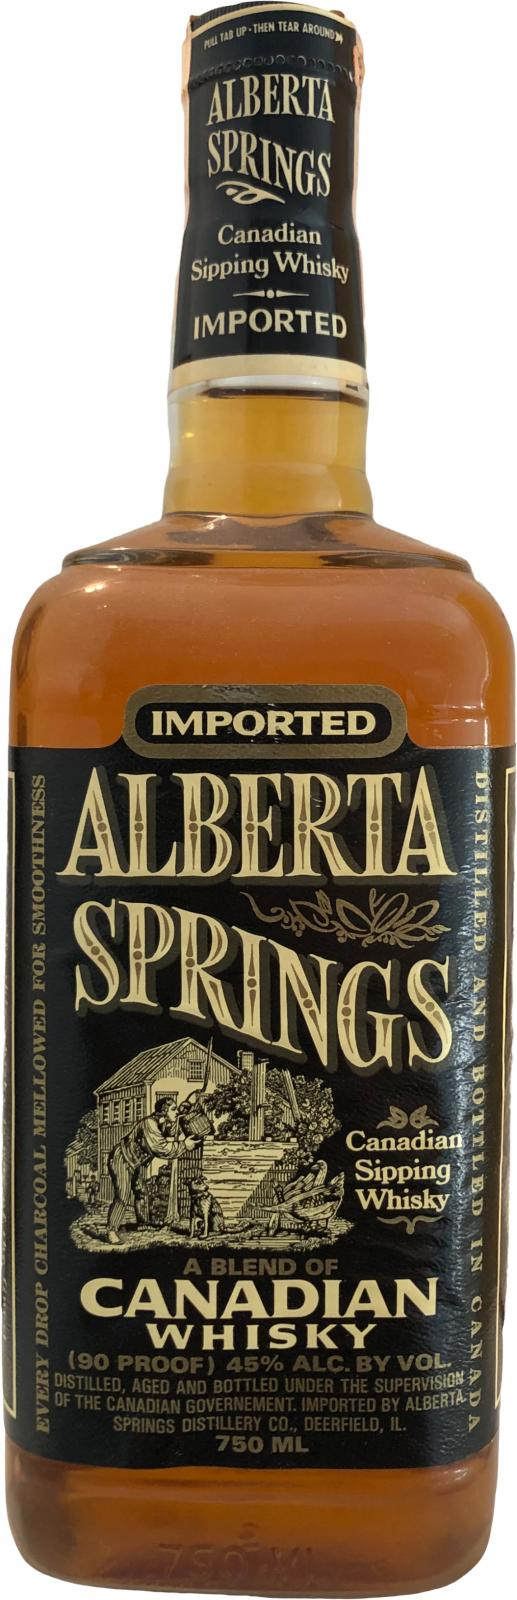 Alberta Springs Canadian Sipping Whisky